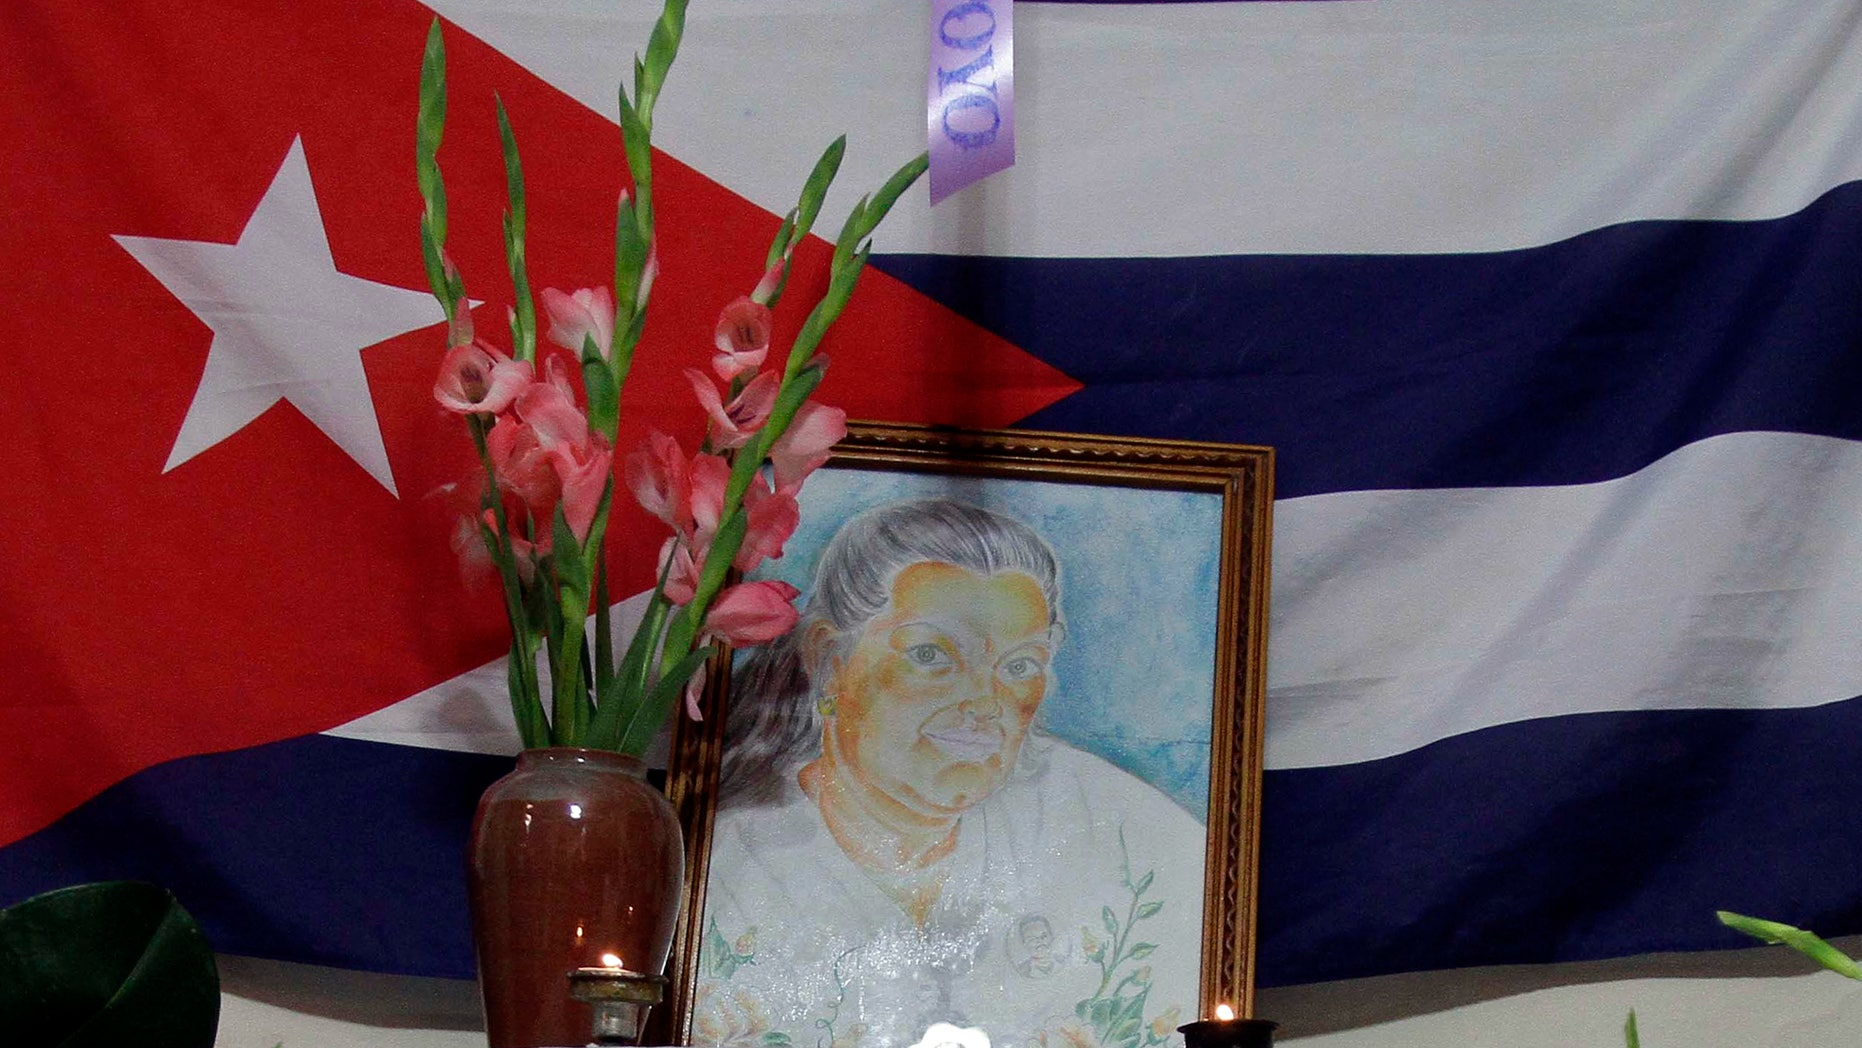 """A painting of Laura Pollan, late leader of the dissident group """"Ladies in White,"""" is flanked by flowers, candles and a Cuban flag during a gathering in her honor at her home in Havana, Cuba, Saturday Oct. 15, 2011. According to Elizardo Sanchez, head of the Cuban Commission for Human Rights and National Reconciliation, Pollan died of a cardio-respiratory attack on Friday Oct. 14, 2011. (AP Photo/Franklin Reyes)"""